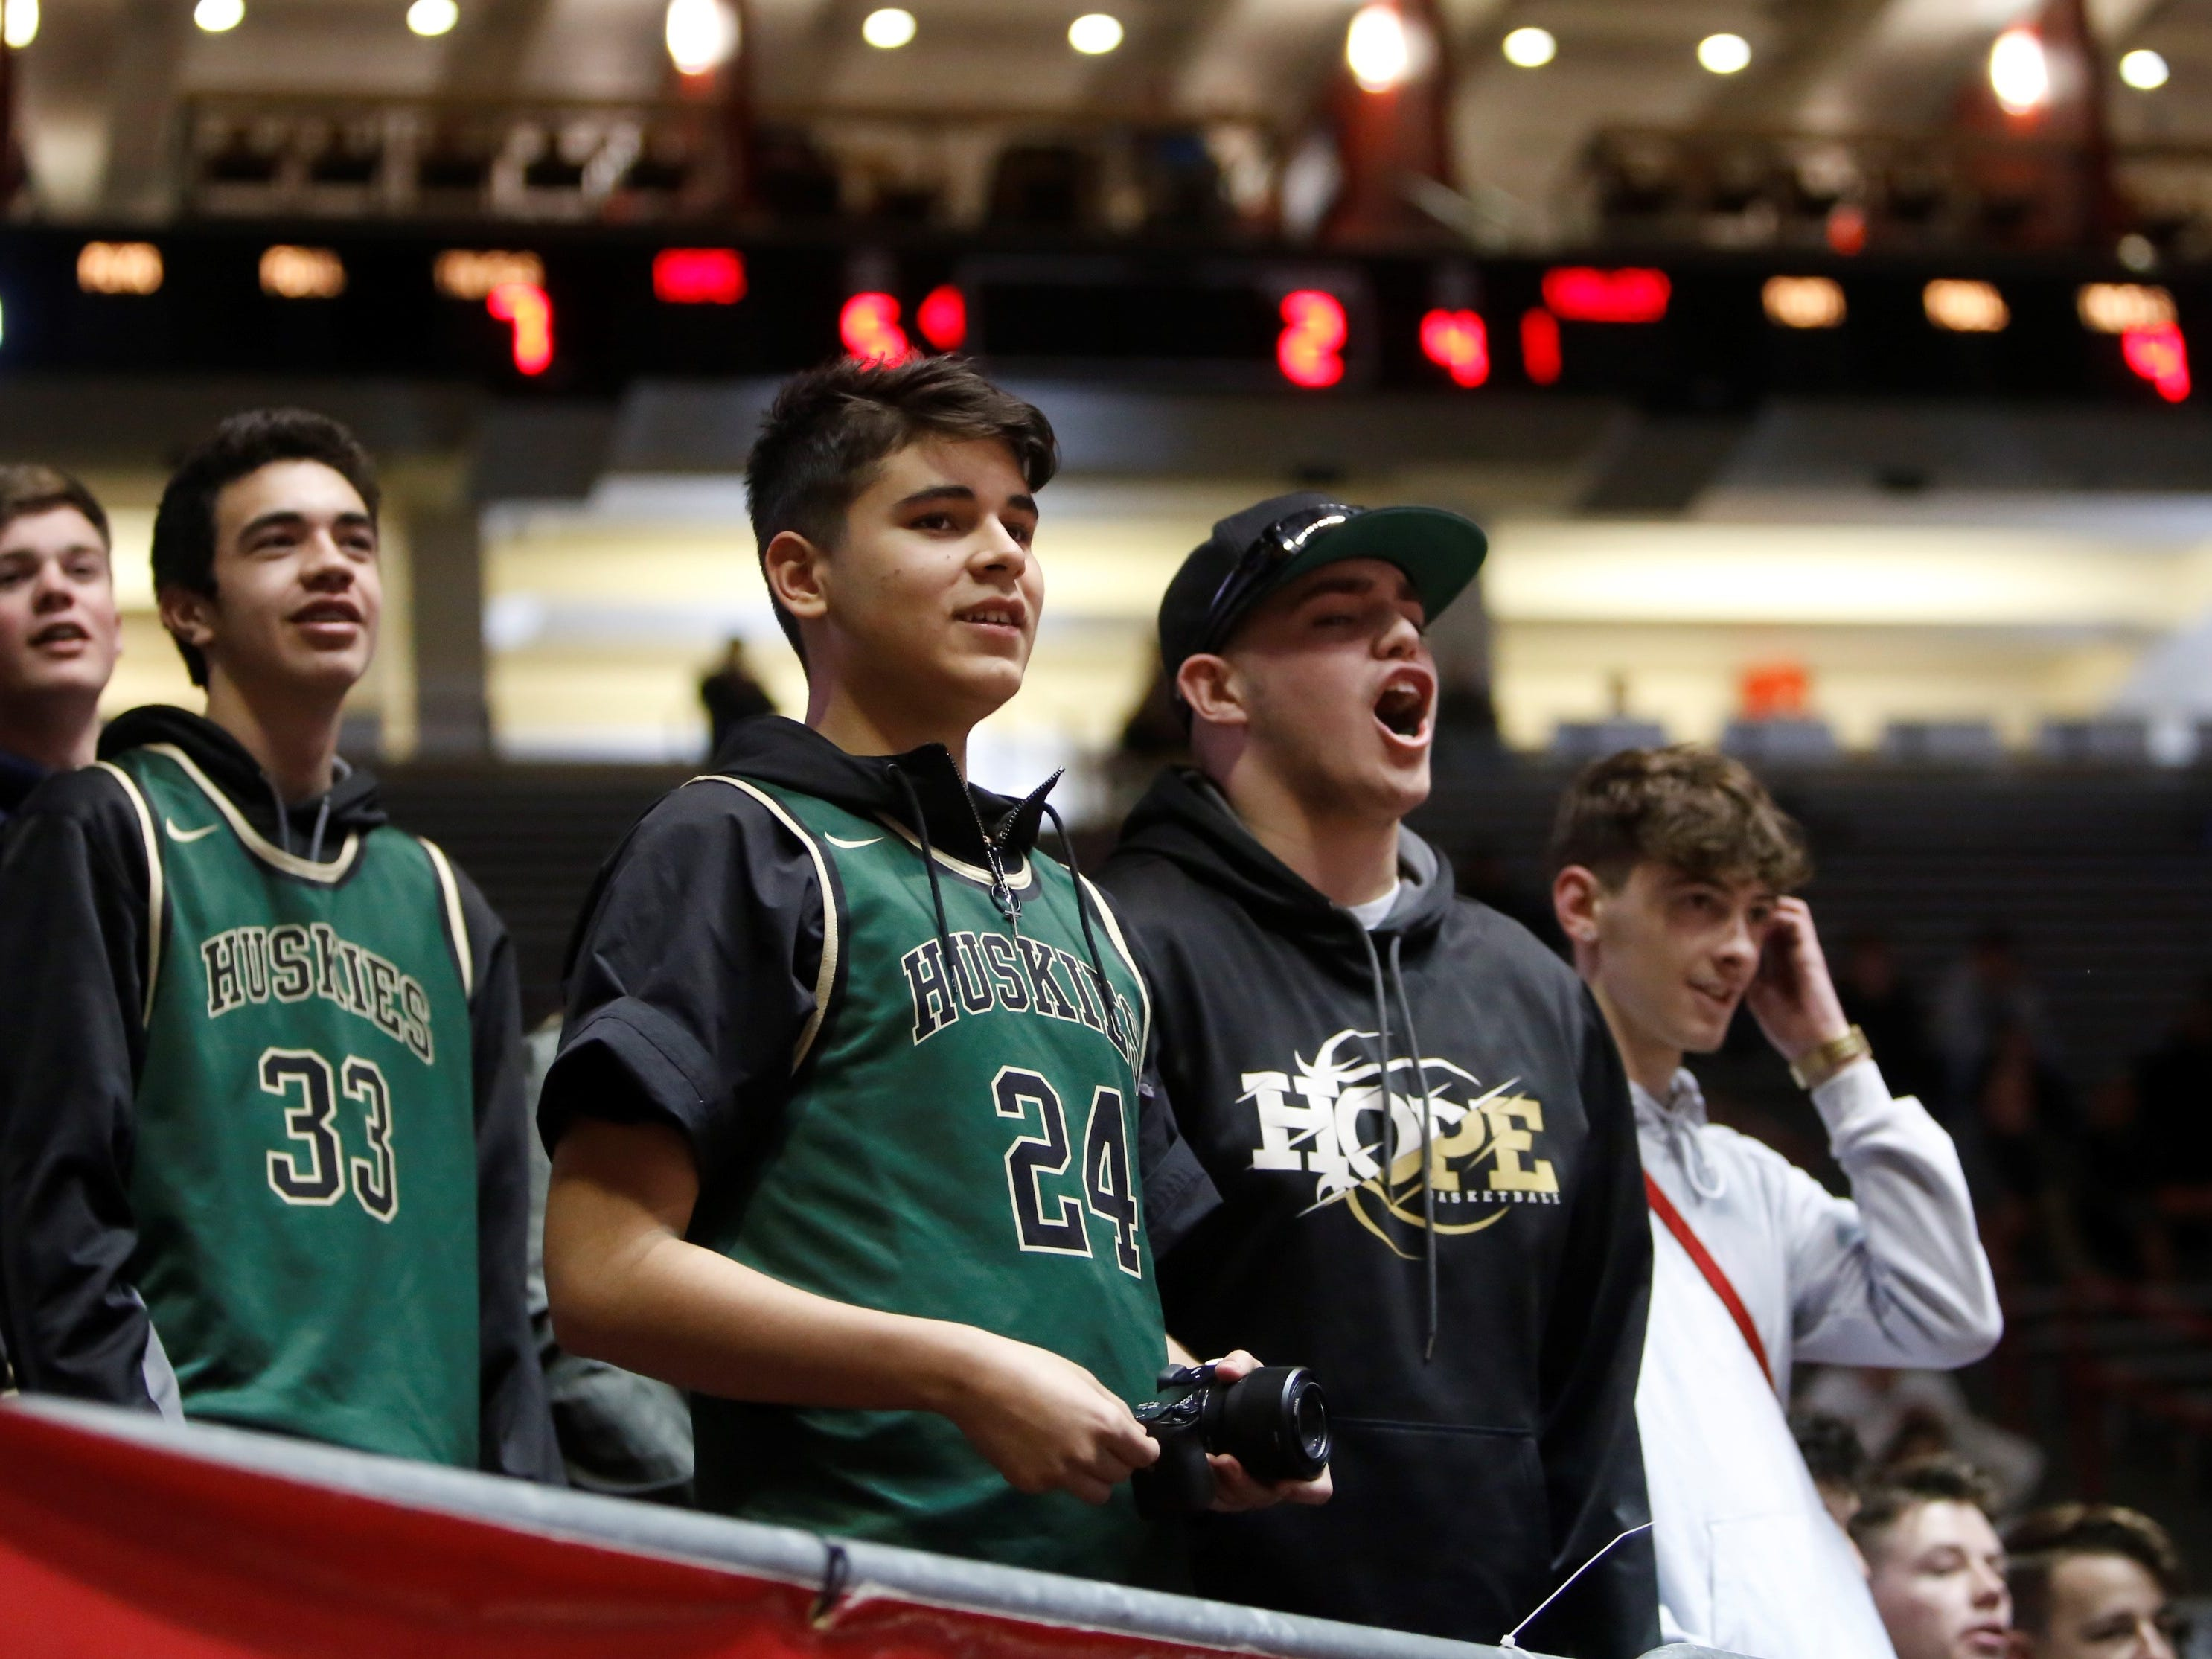 Hope Christian fans start getting loud during a Valley free throw attempt during Wednesday's 4A state quarterfinals at Dreamstyle Arena in Albuquerque.